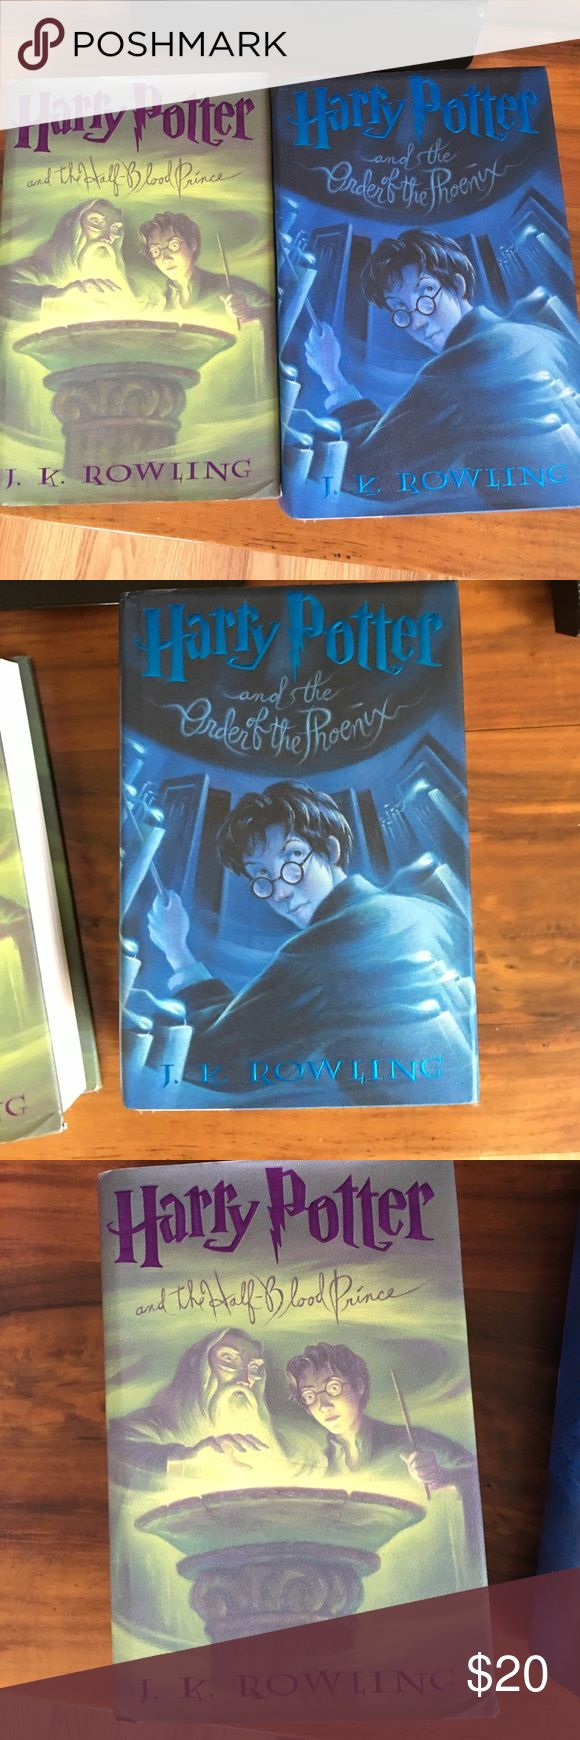 Bundle of 5 books Harry Potter and the order of the Phoenix. Harry Potter and the half-blood Prince. Both books are hard covers and in excellent condition. (Twilight, New Moon, and Eclipse books. All old books but still readable. New Moon is a hardcover and the others are soft cover.) 😍😍 This is a bundle and price is for all 5 books. Visit my closet for many great items and receive a 10% when you purchase 3+ bundled items. Other